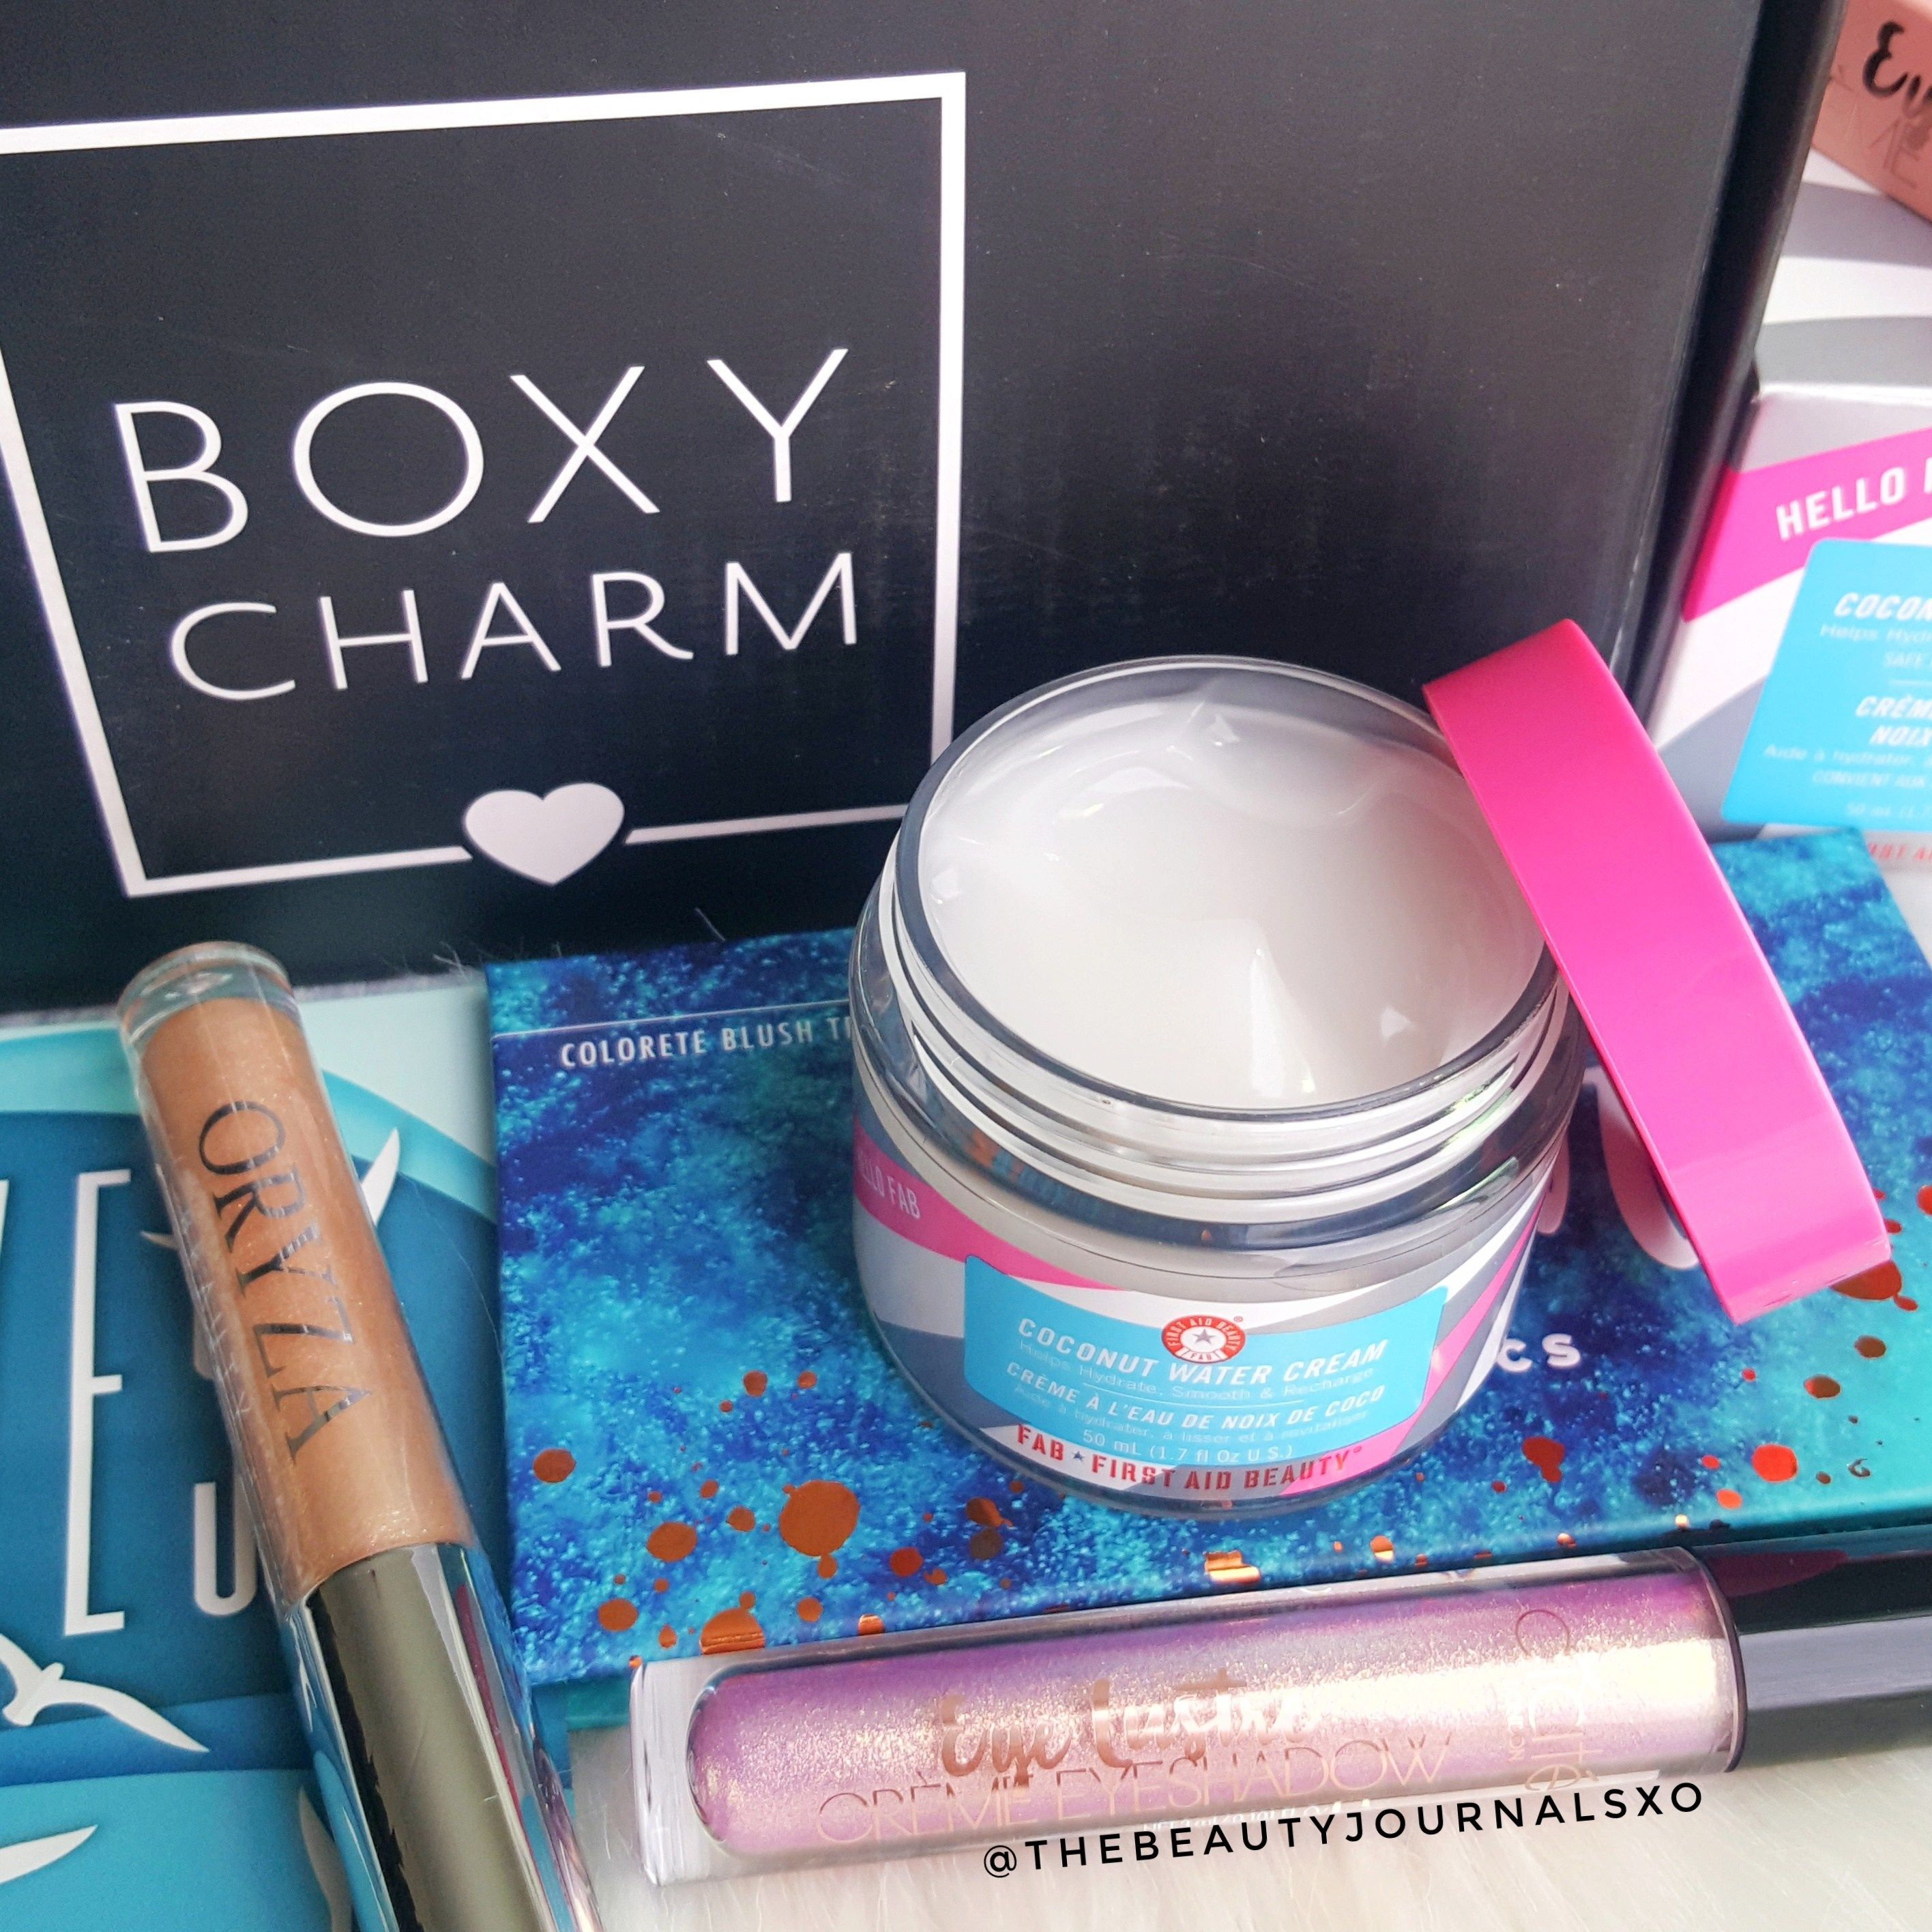 Boxycharm May 2019 Unboxing and Review Boxycharm, Milk